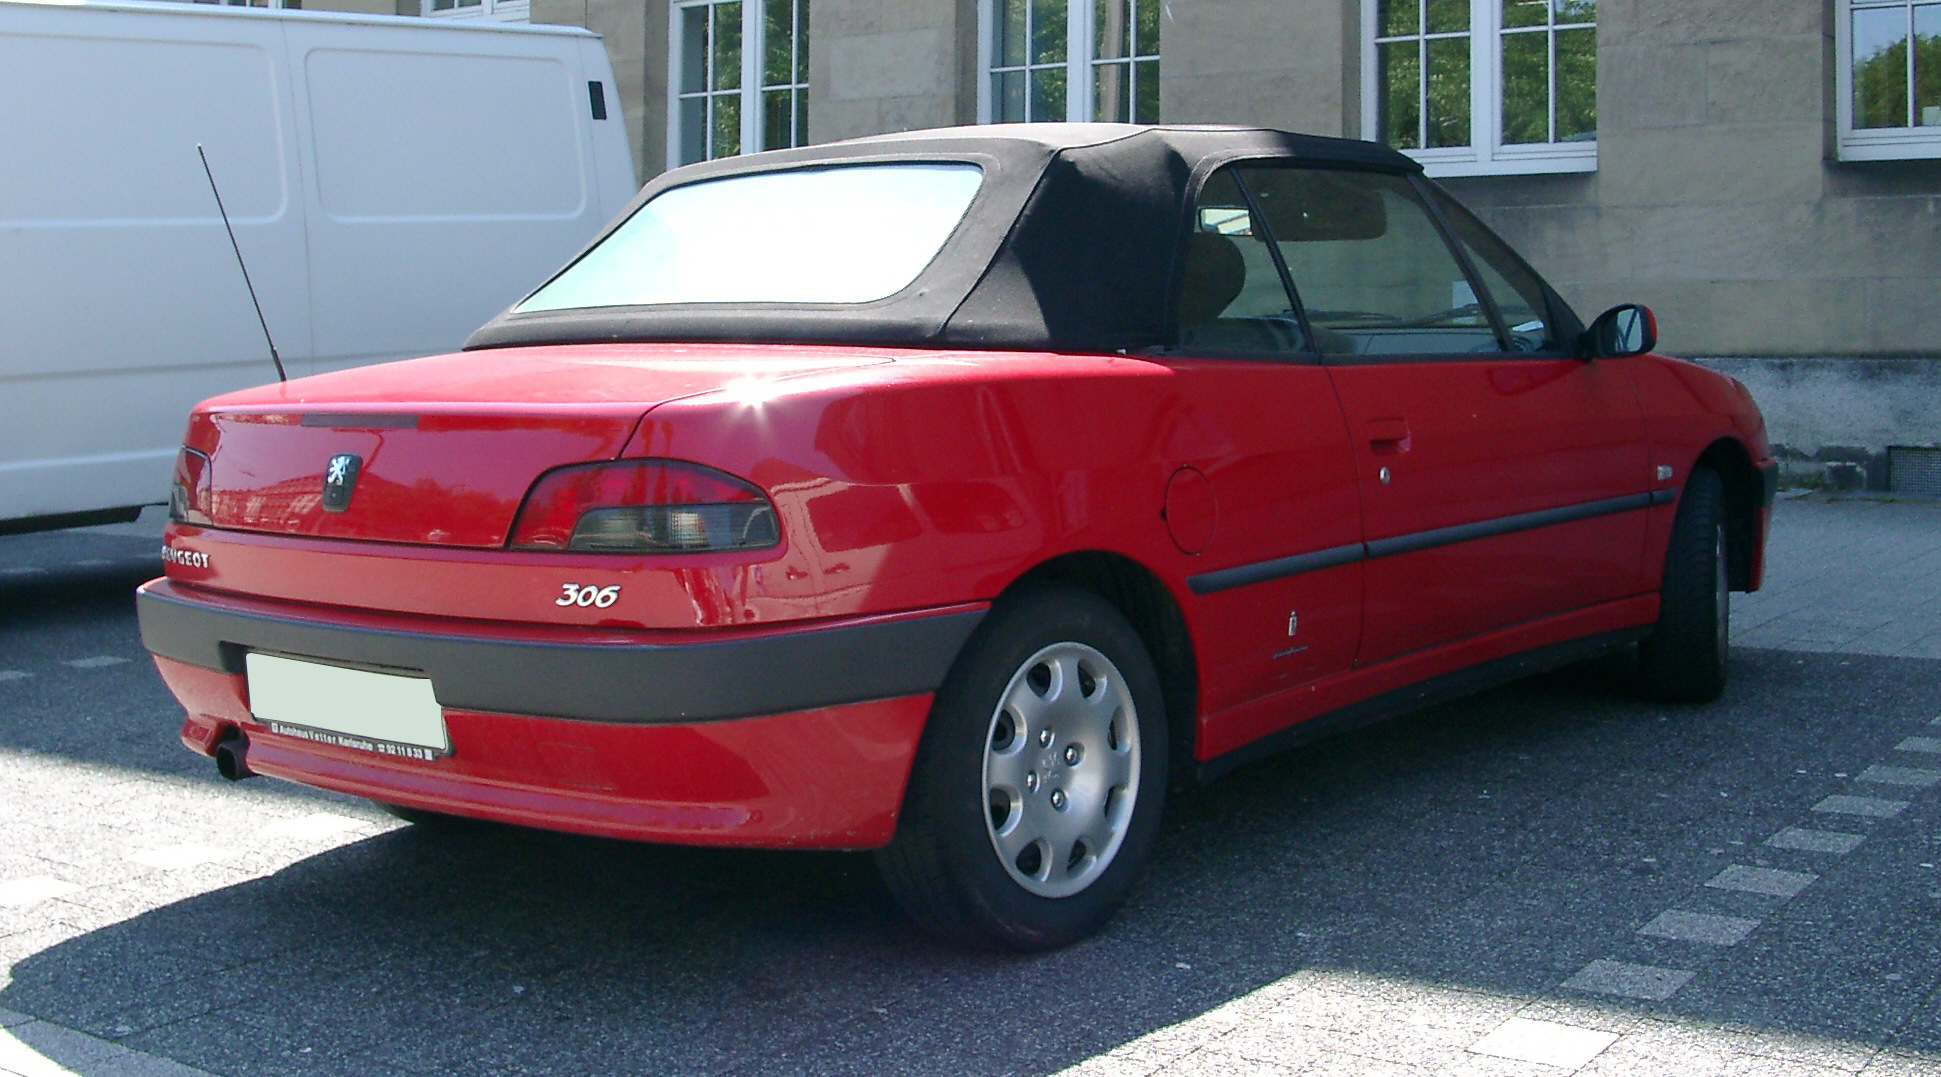 file peugeot 306 cabrio rear wikimedia commons. Black Bedroom Furniture Sets. Home Design Ideas